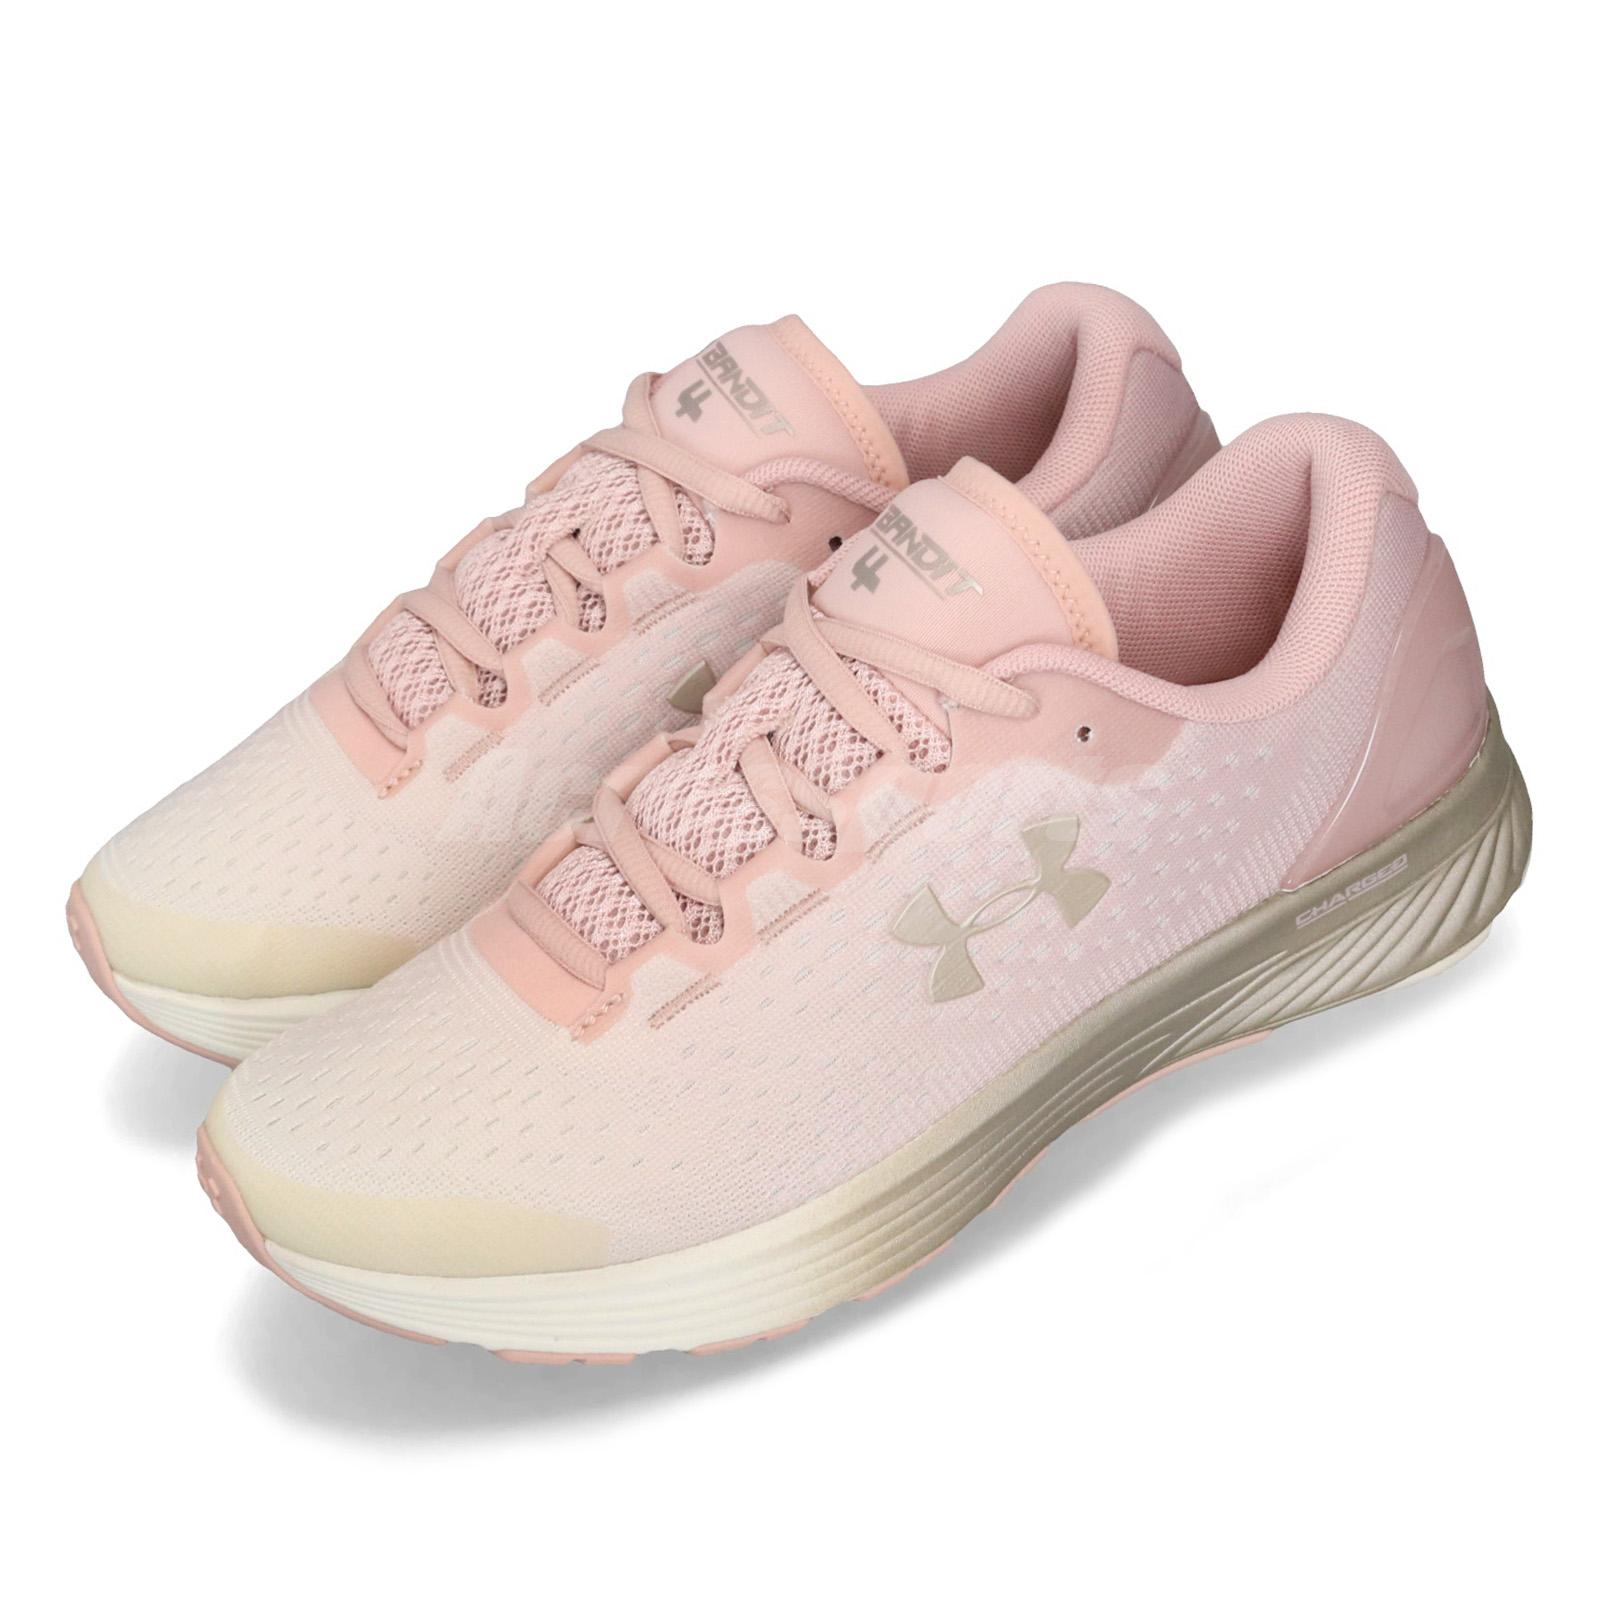 finest selection 78592 72bbb Details about Under Armour UA Charged Bandit 4 Pink Grey Womens Running  Shoes 3020357-603